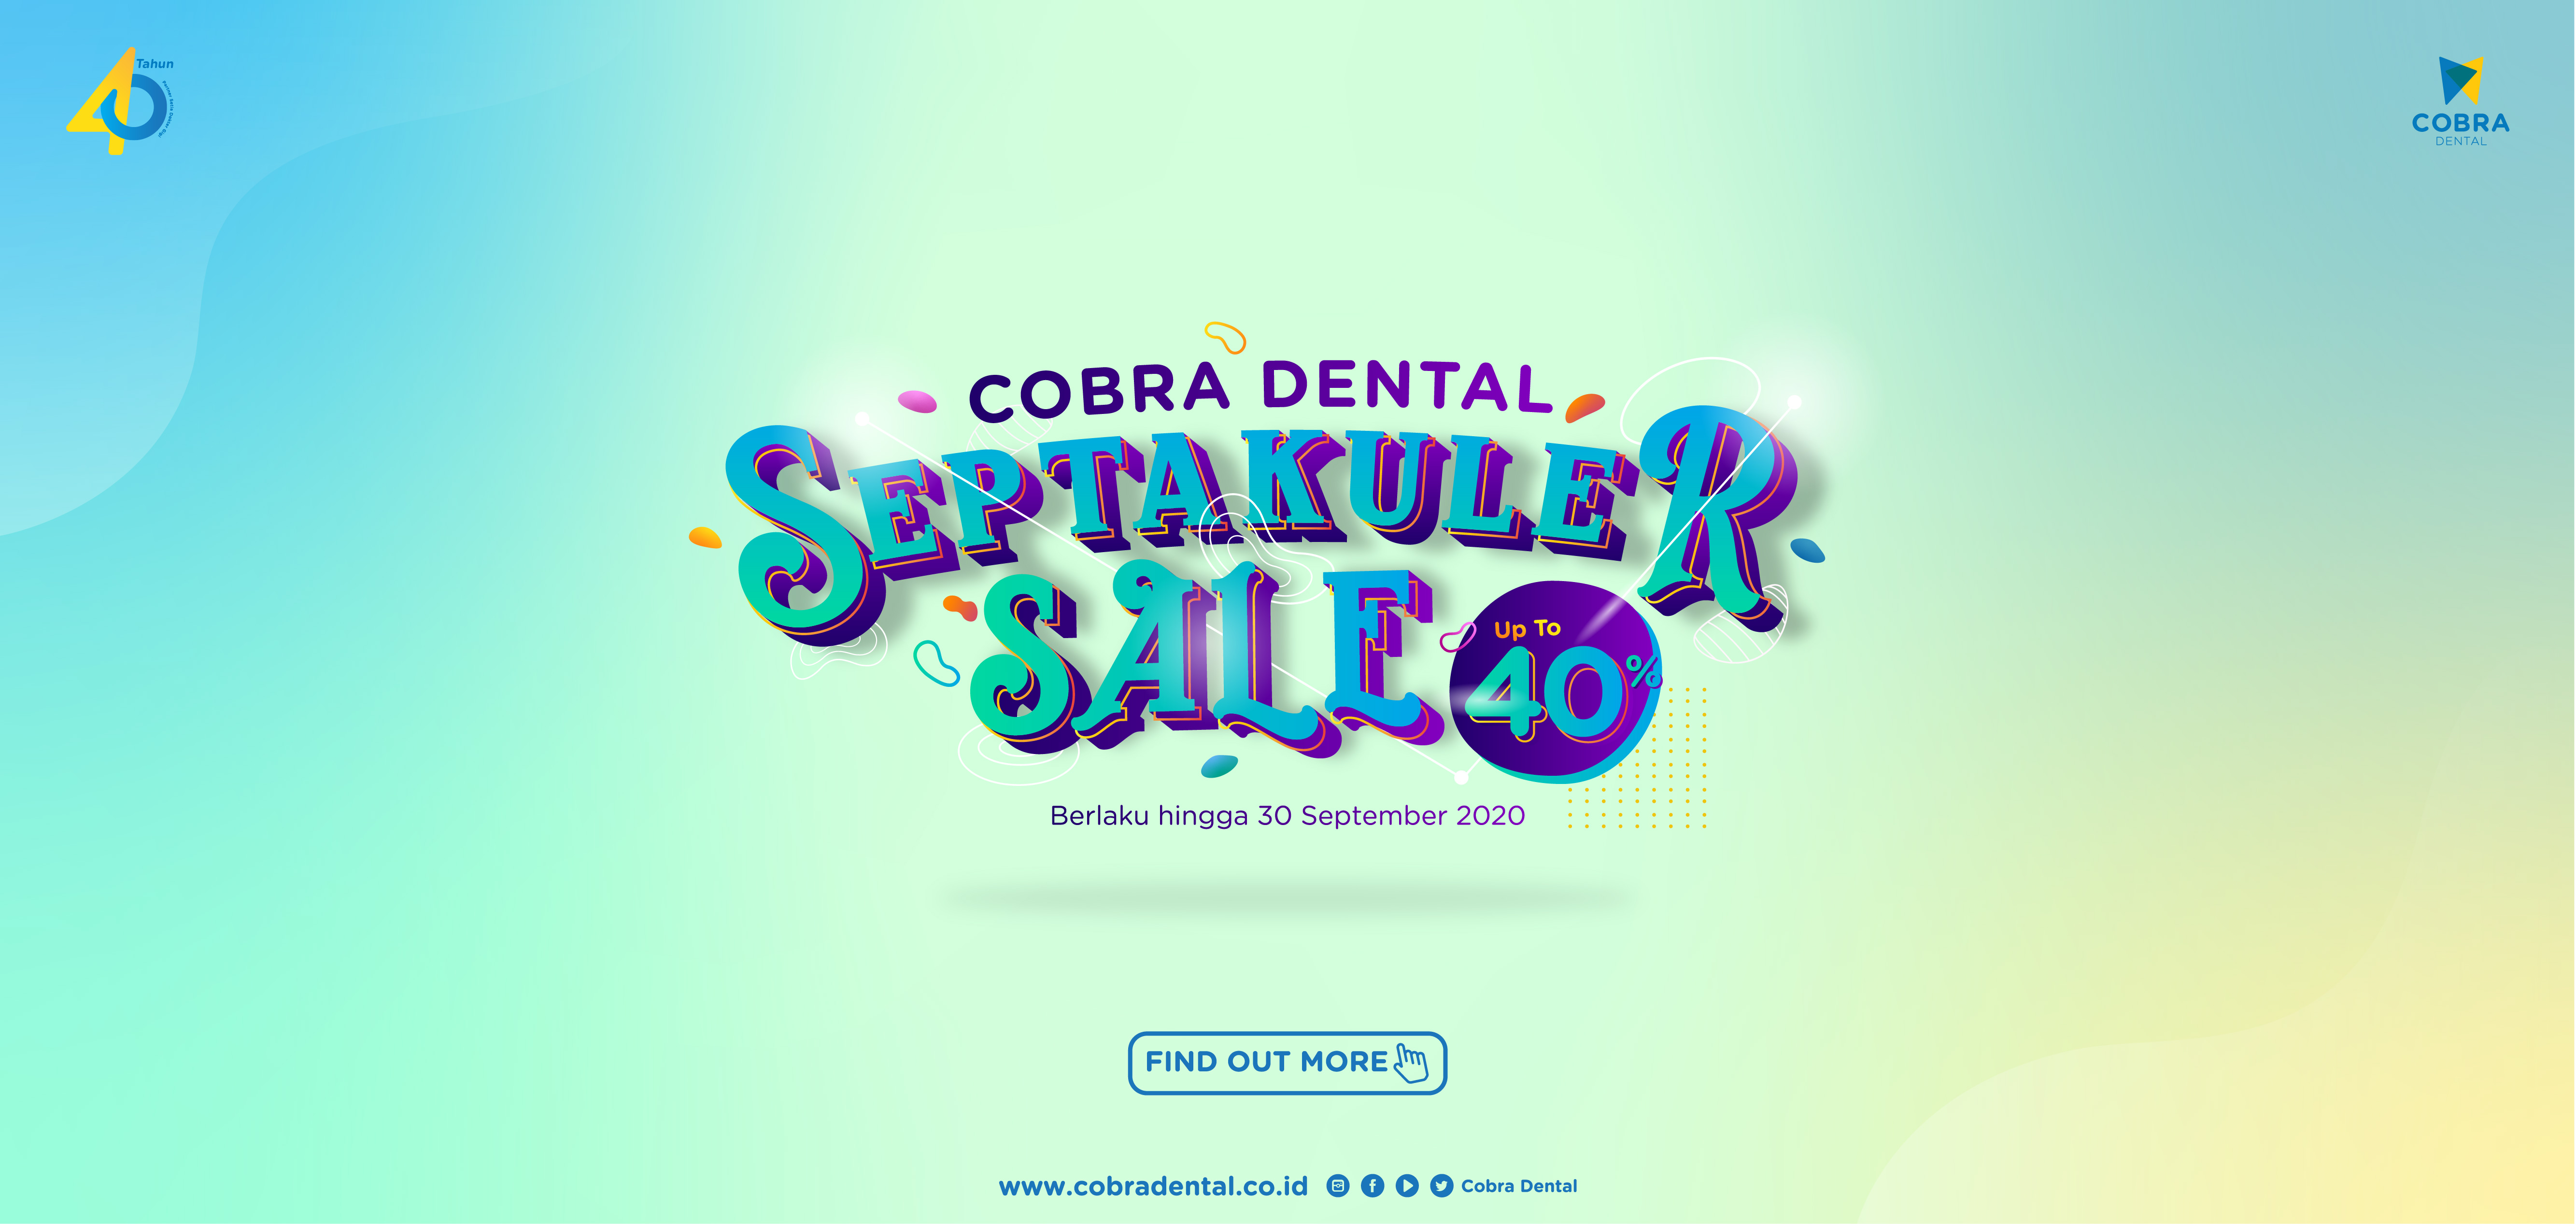 Promo September Cobra Dental - Septakuler sale